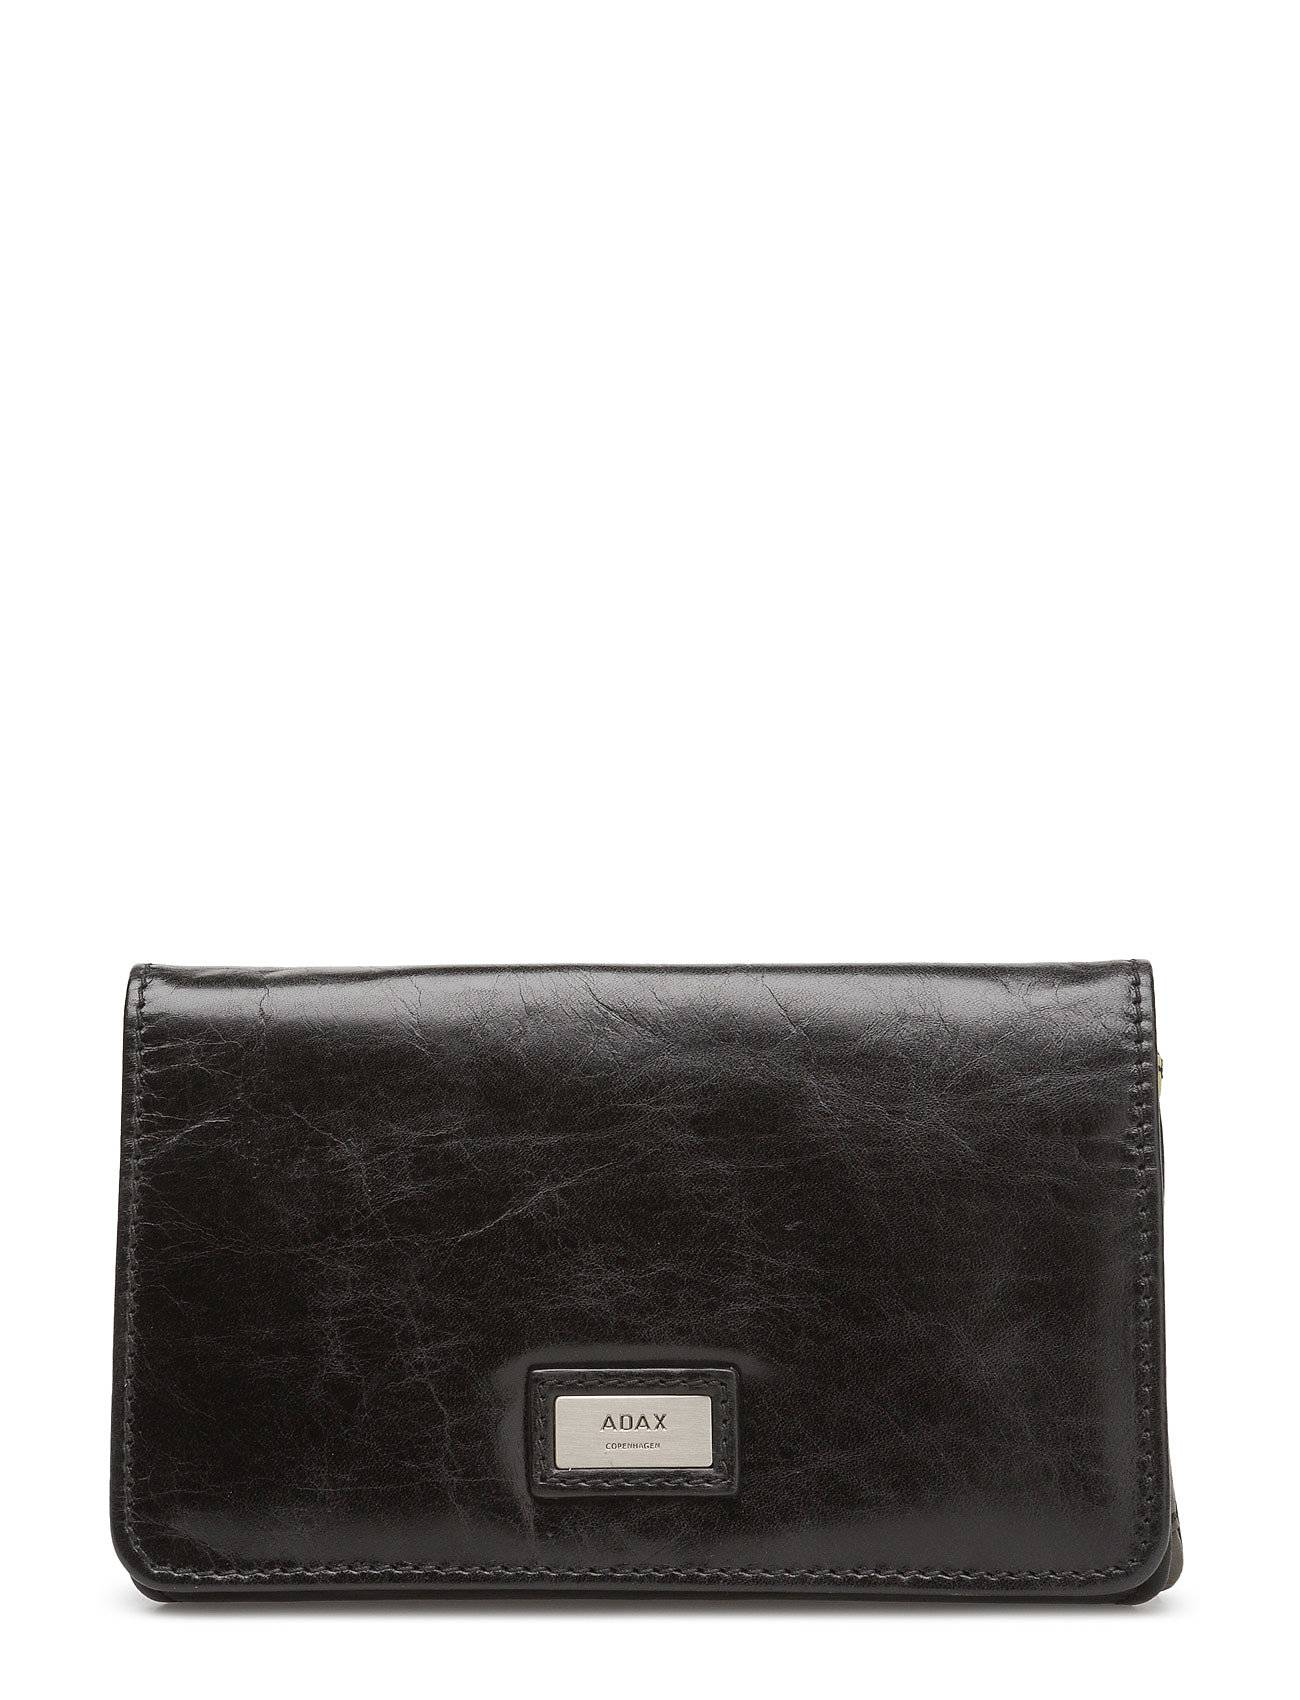 Adax Salerno Wallet